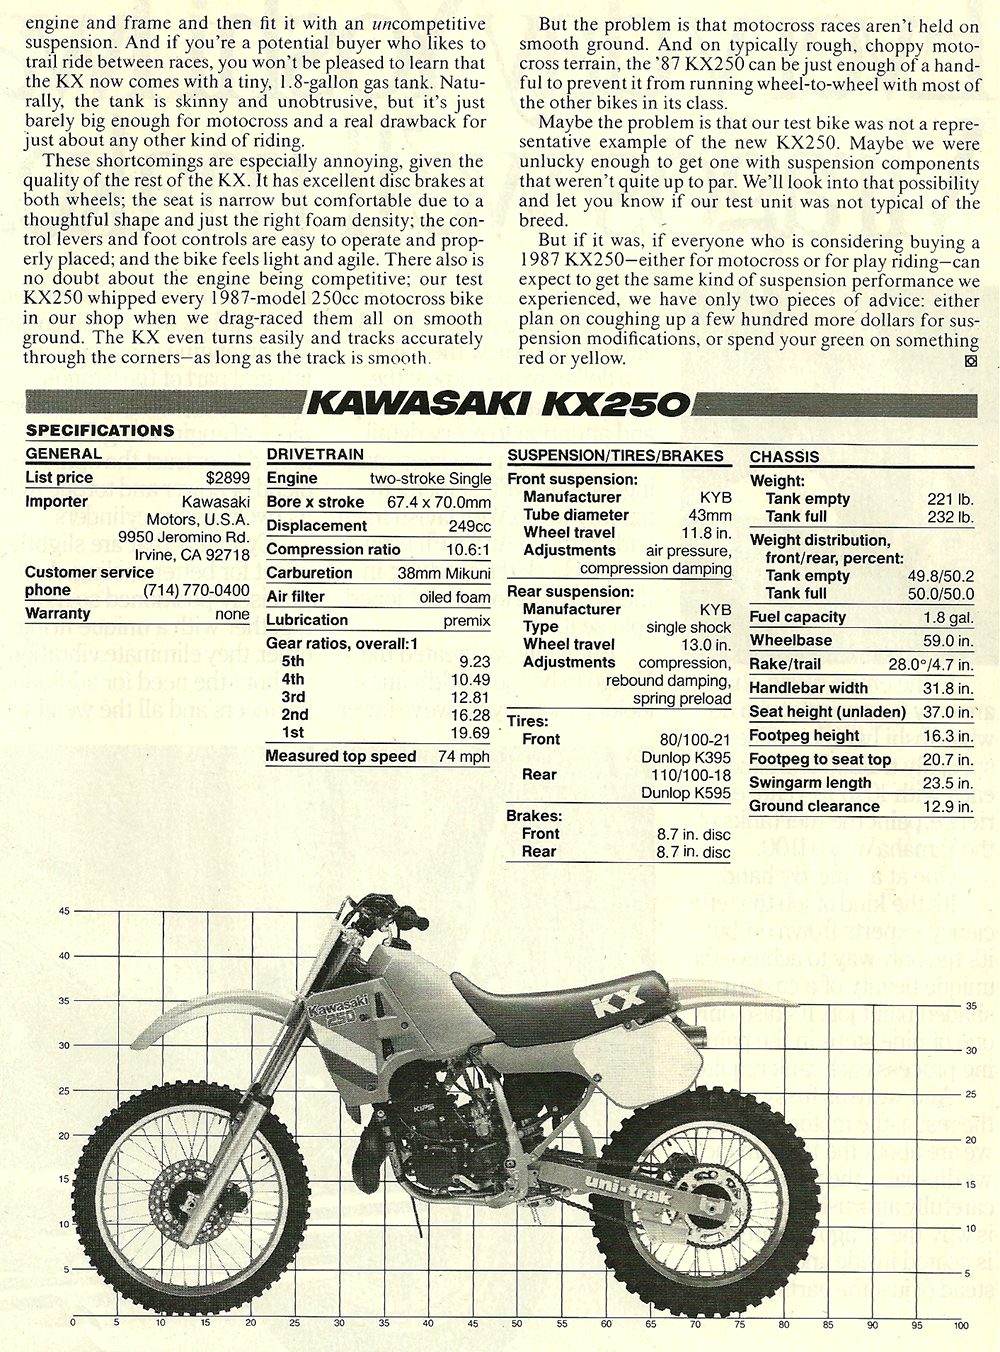 1987 Kawasaki KX250 road test 04.jpg